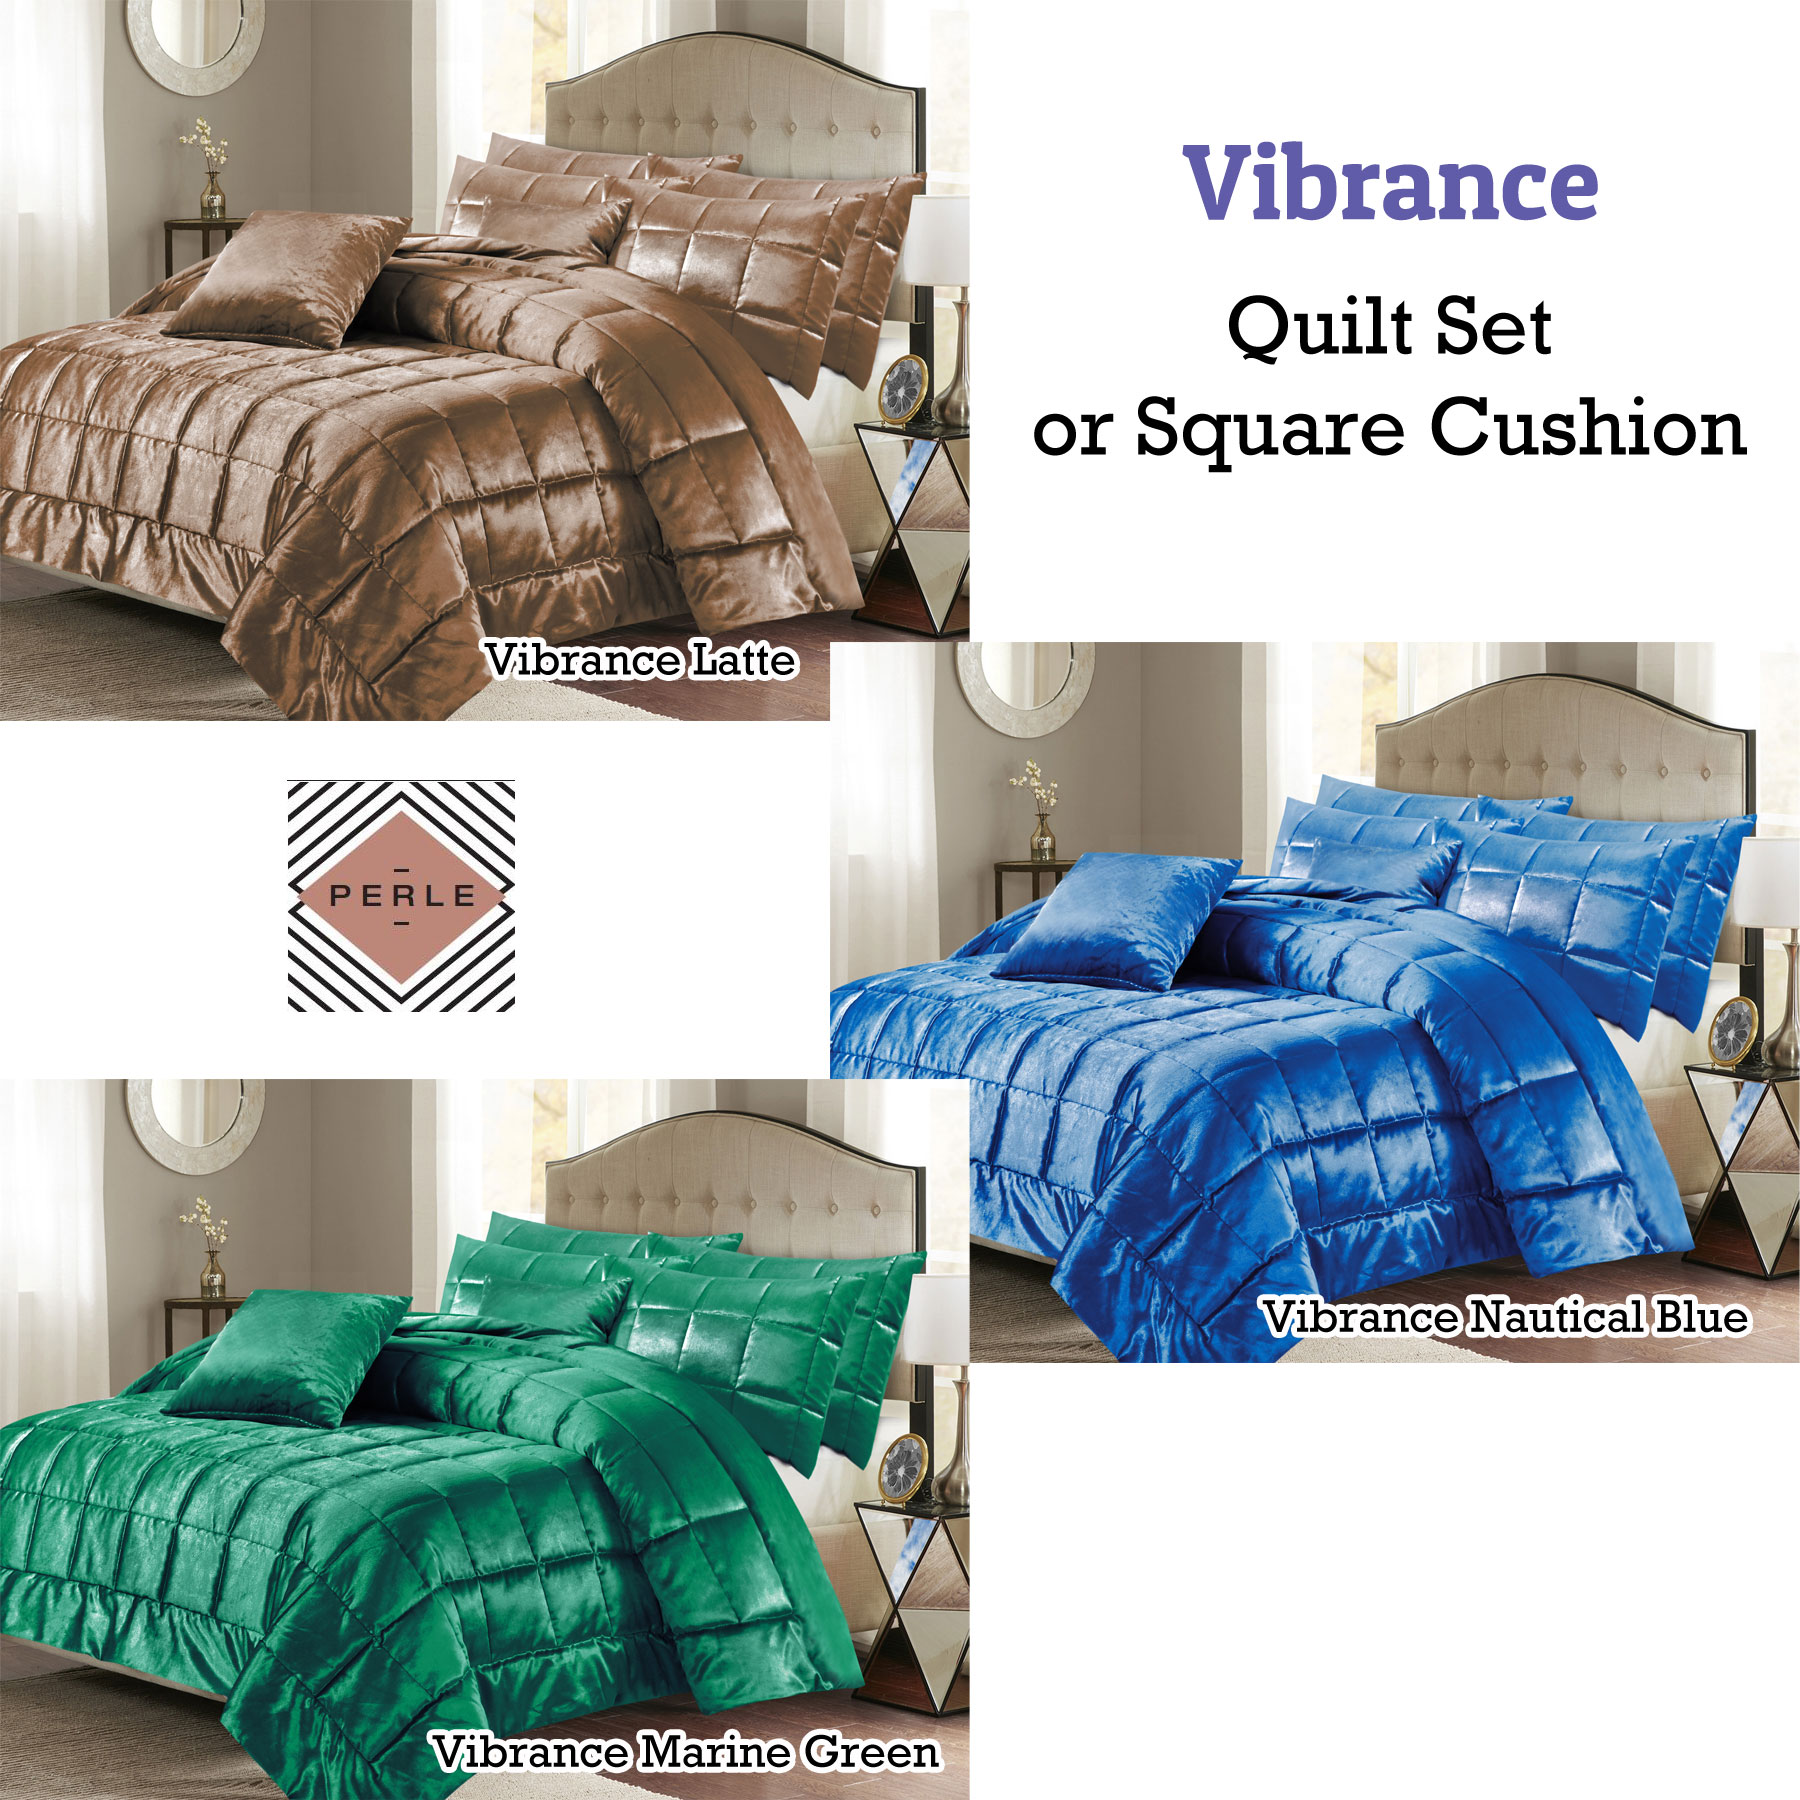 Linge De Maiso Details About Vibrance Quilt Set Or Square Cushion By Perle Linge De Maison